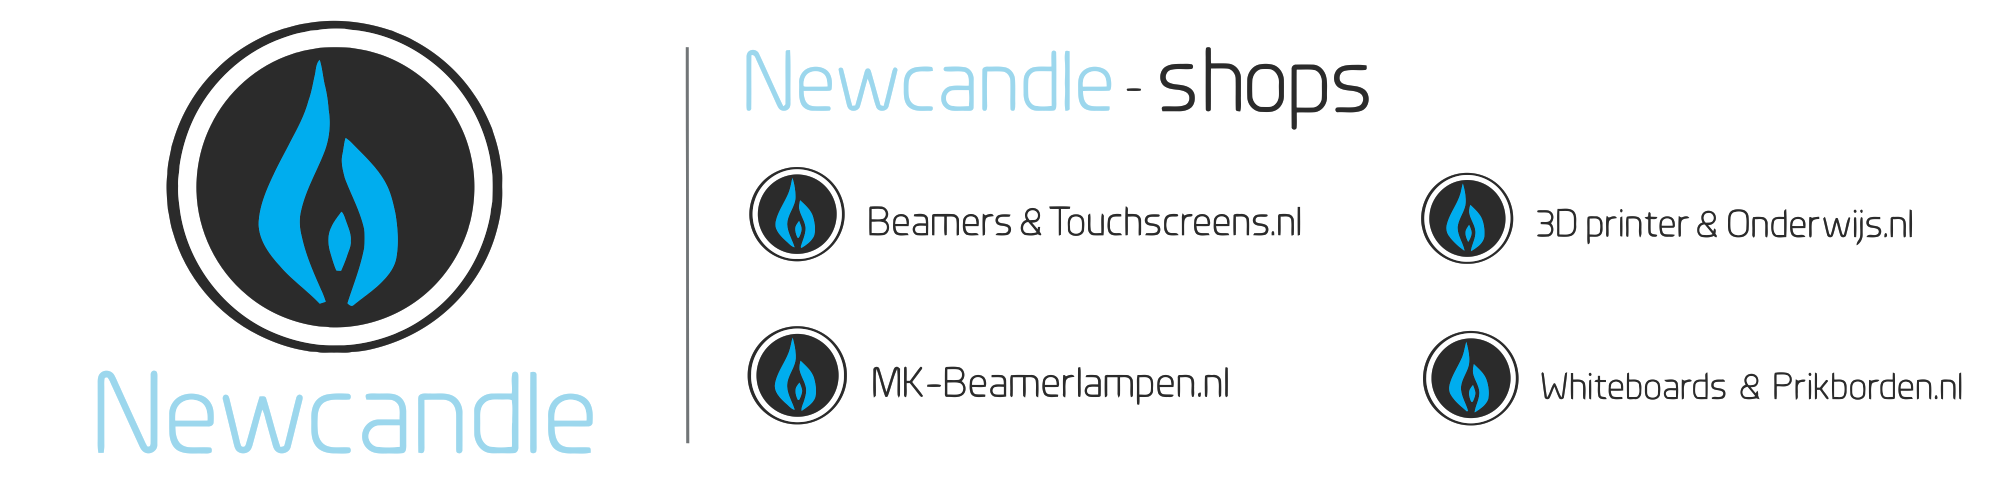 Newcandle Logo_vectorized